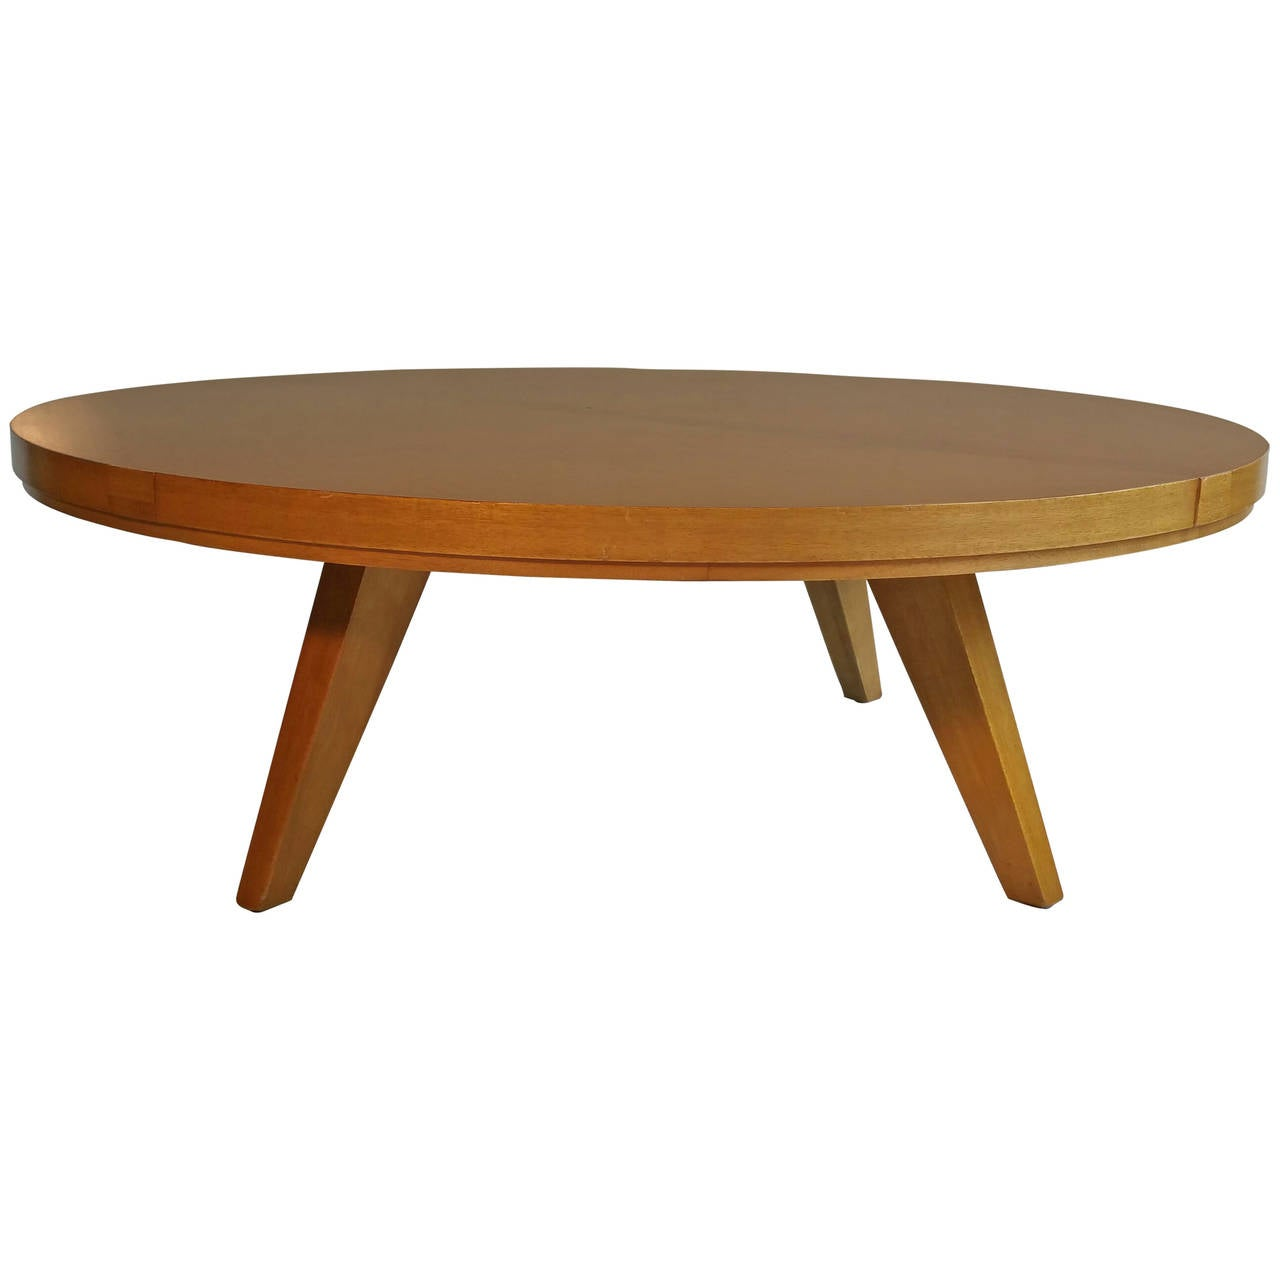 Classic Mid-Century Modern Coffee Table, Red Lion